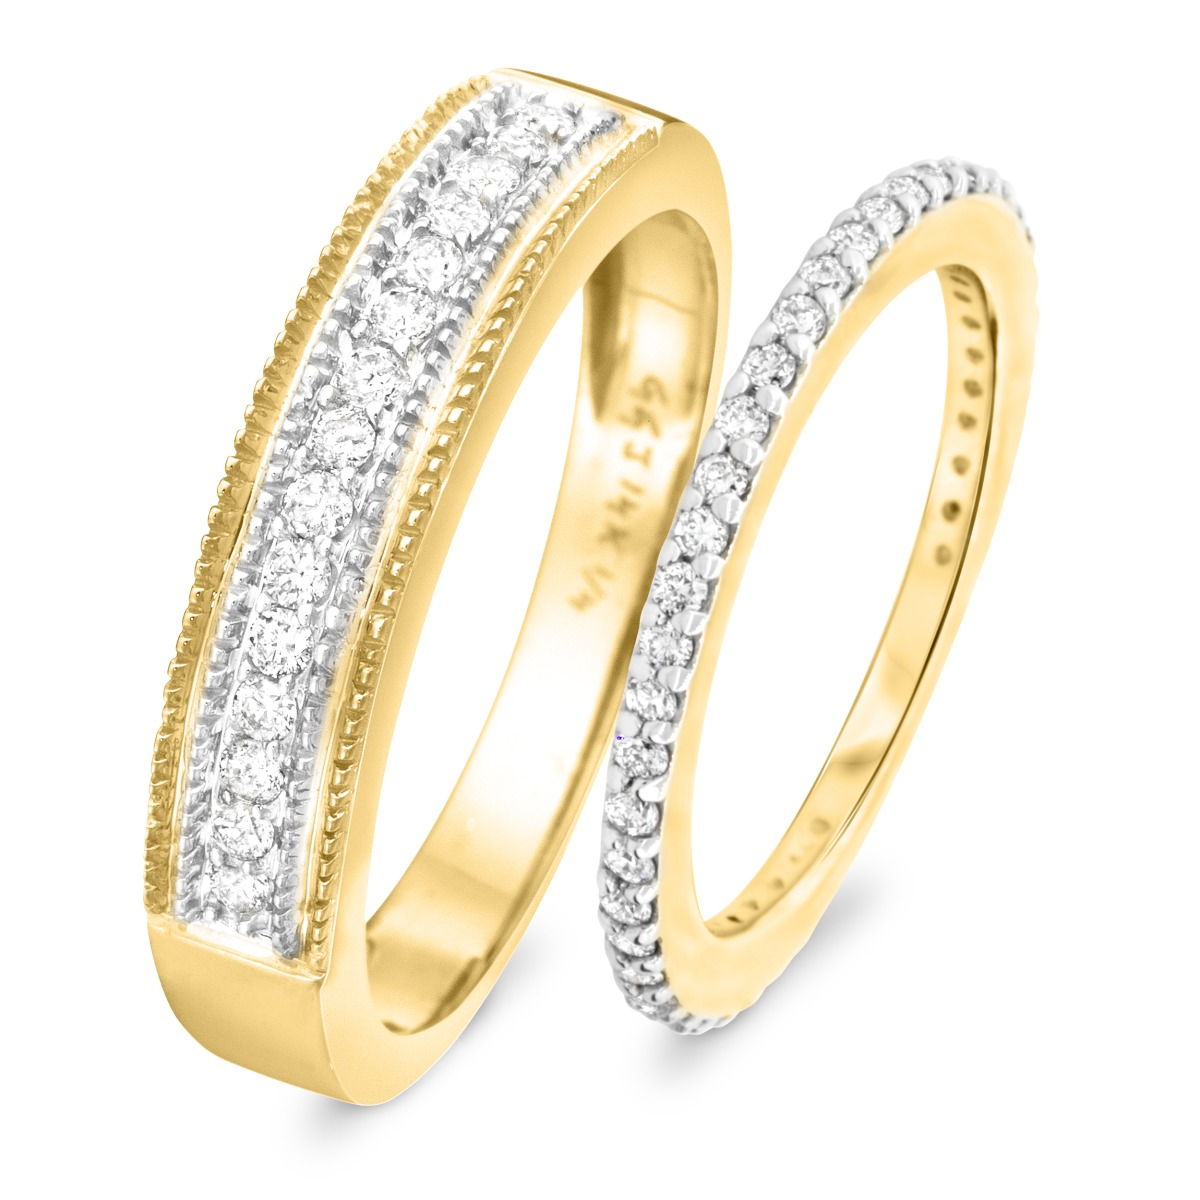 2/3 Carat T.W. Round Cut Diamond His and Hers Wedding Band Set 10K Yellow Gold